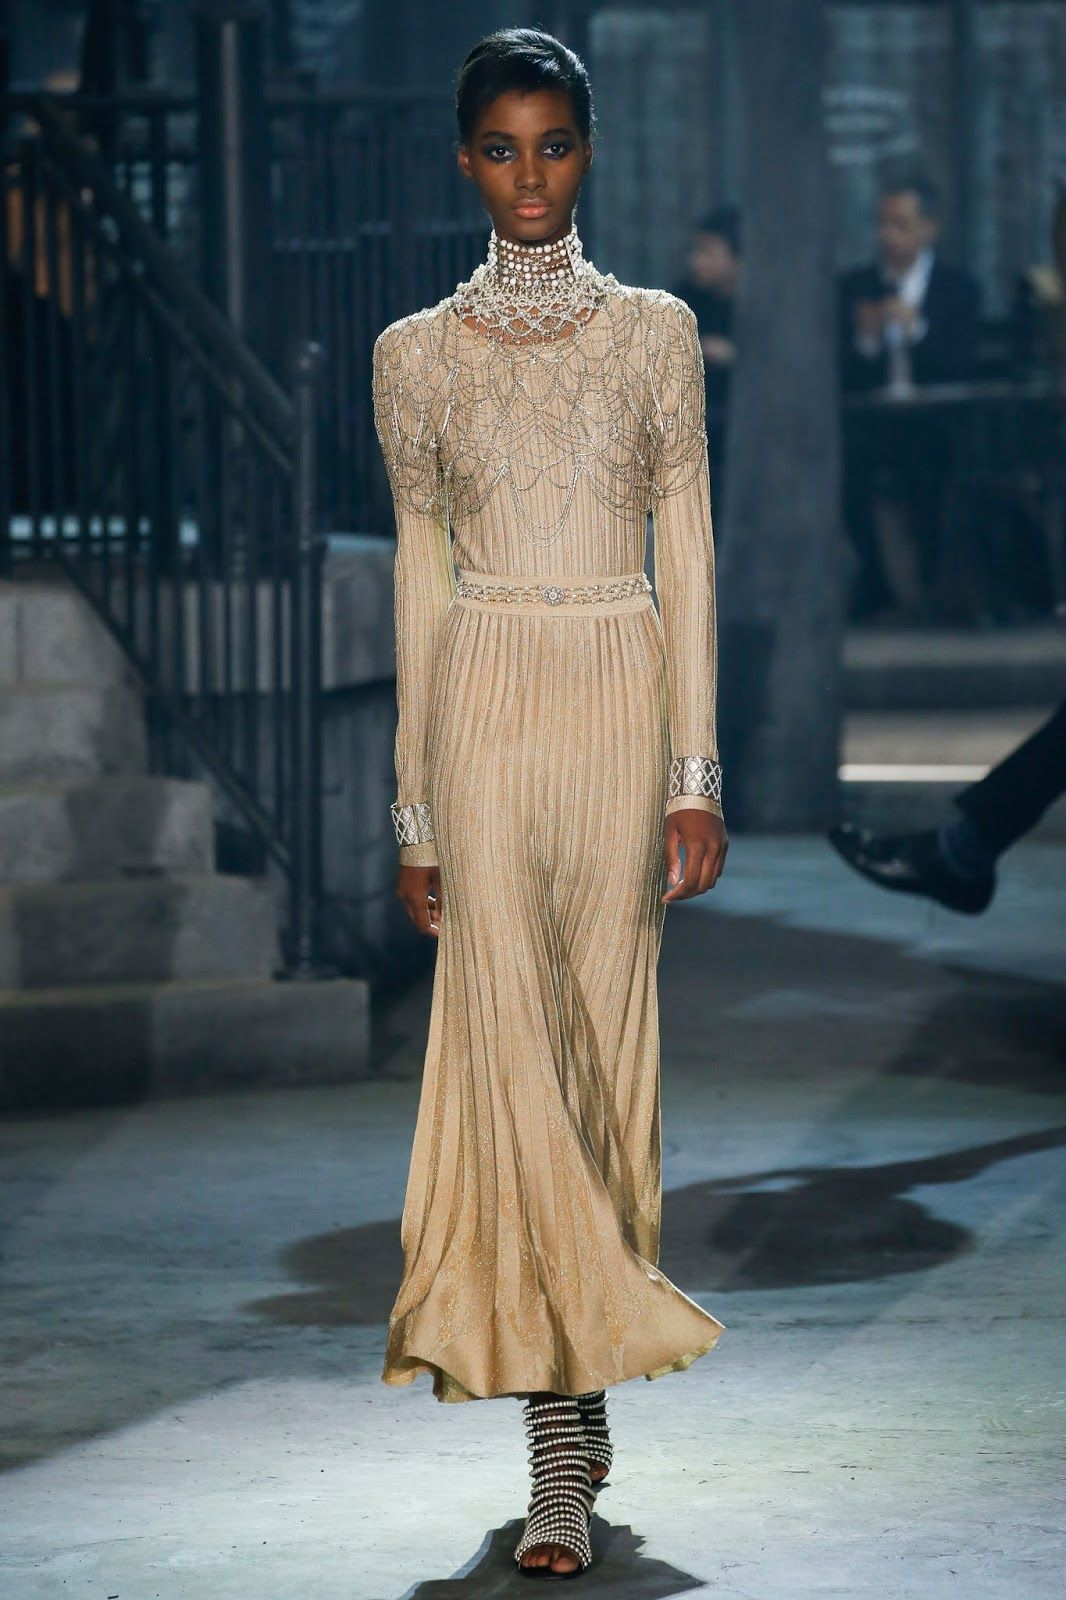 Chanel beautiful fall catwalks and chanel style